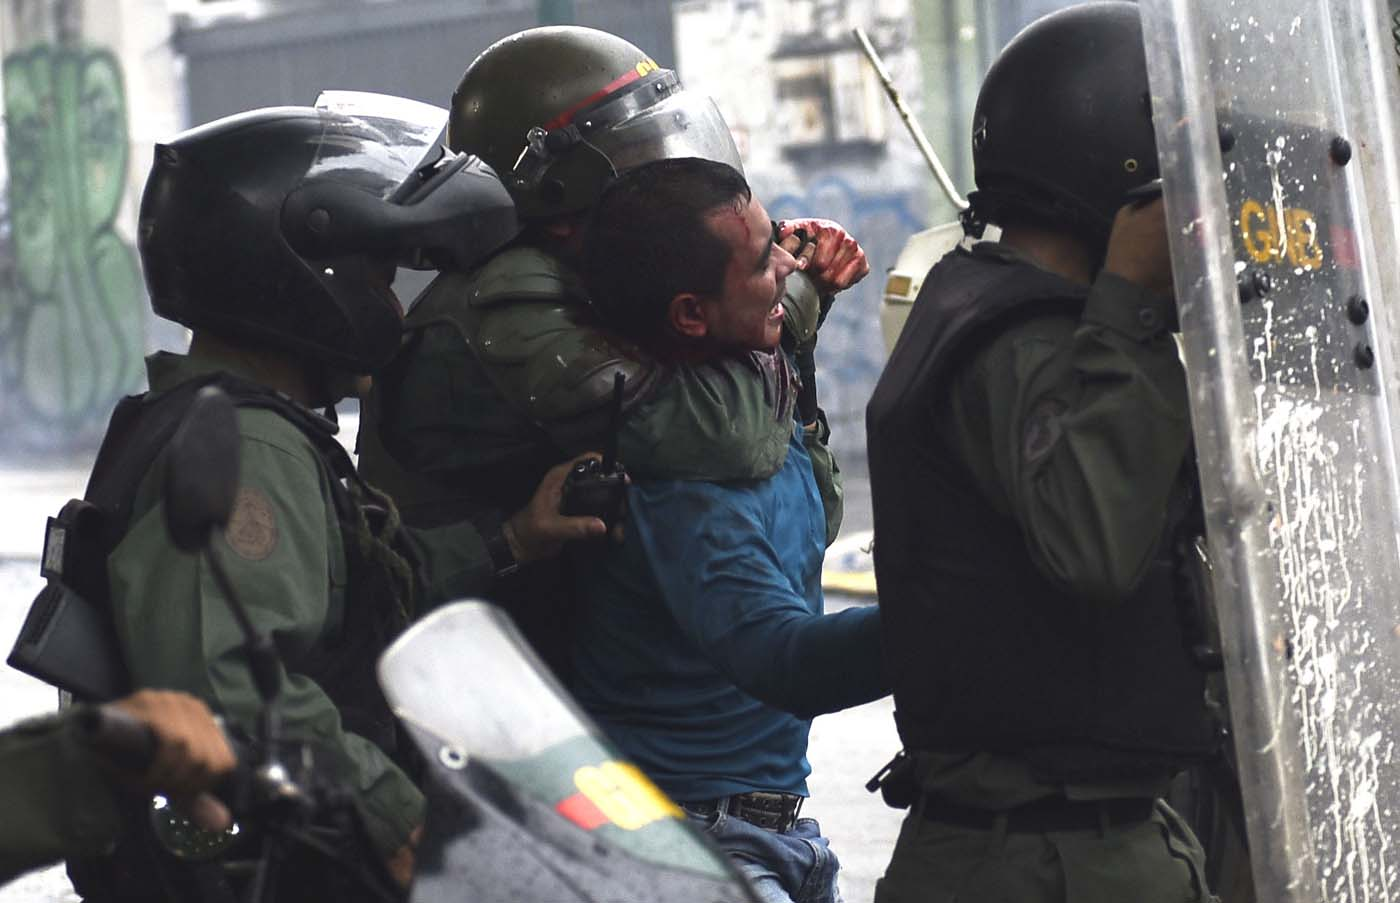 An anti-government activist is arrested during clashes in Caracas on July 28, 2017. Protesters took over streets in Caracas on Friday in a show of defiance to President Nicolas Maduro, as the crisis gripping Venezuela turned deadlier ahead of a controversial weekend election that has earned international scorn. / AFP PHOTO / CARLOS BECERRA